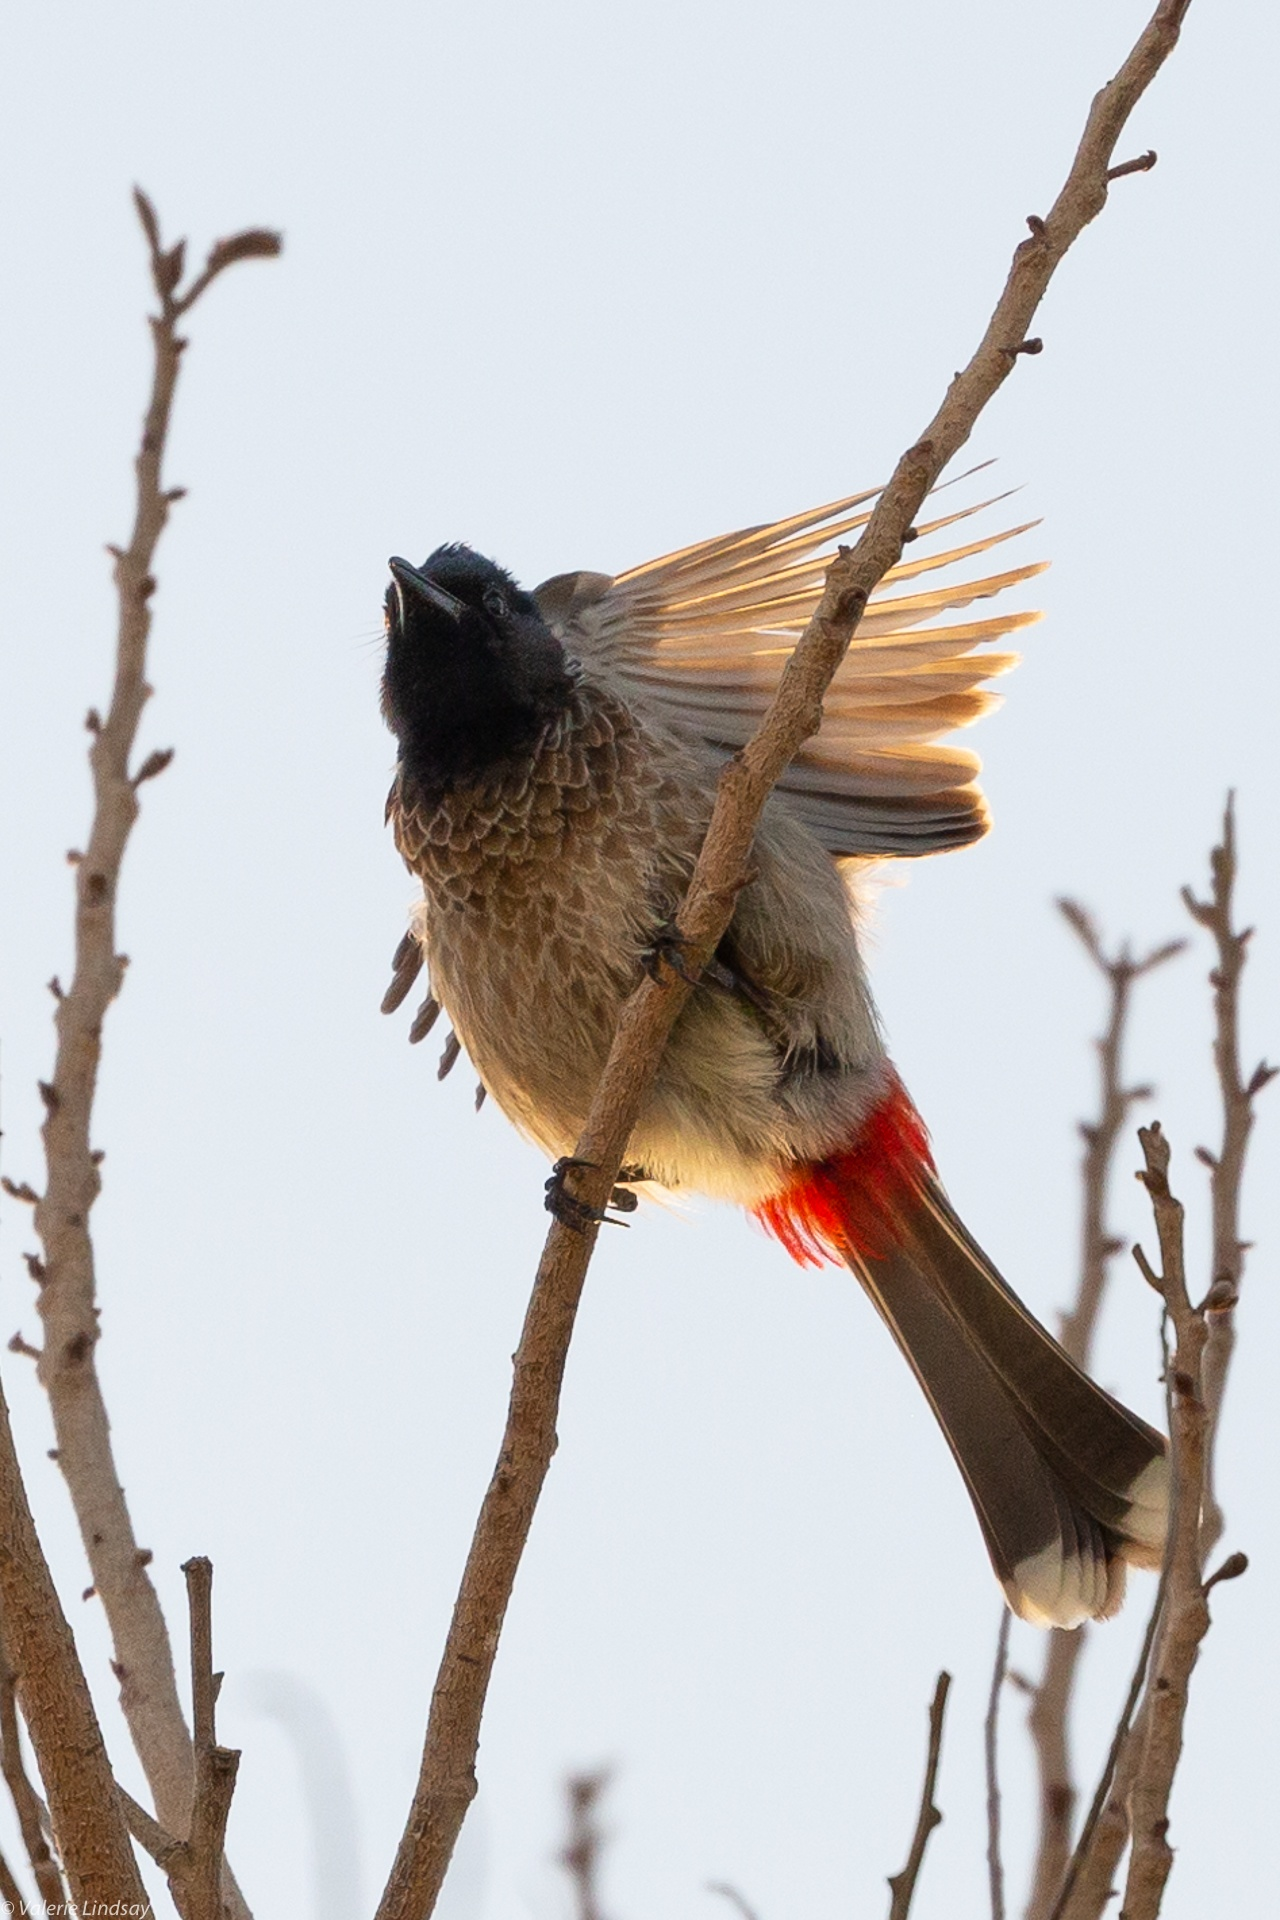 Red vented bulbul stretching in late afternoon sun